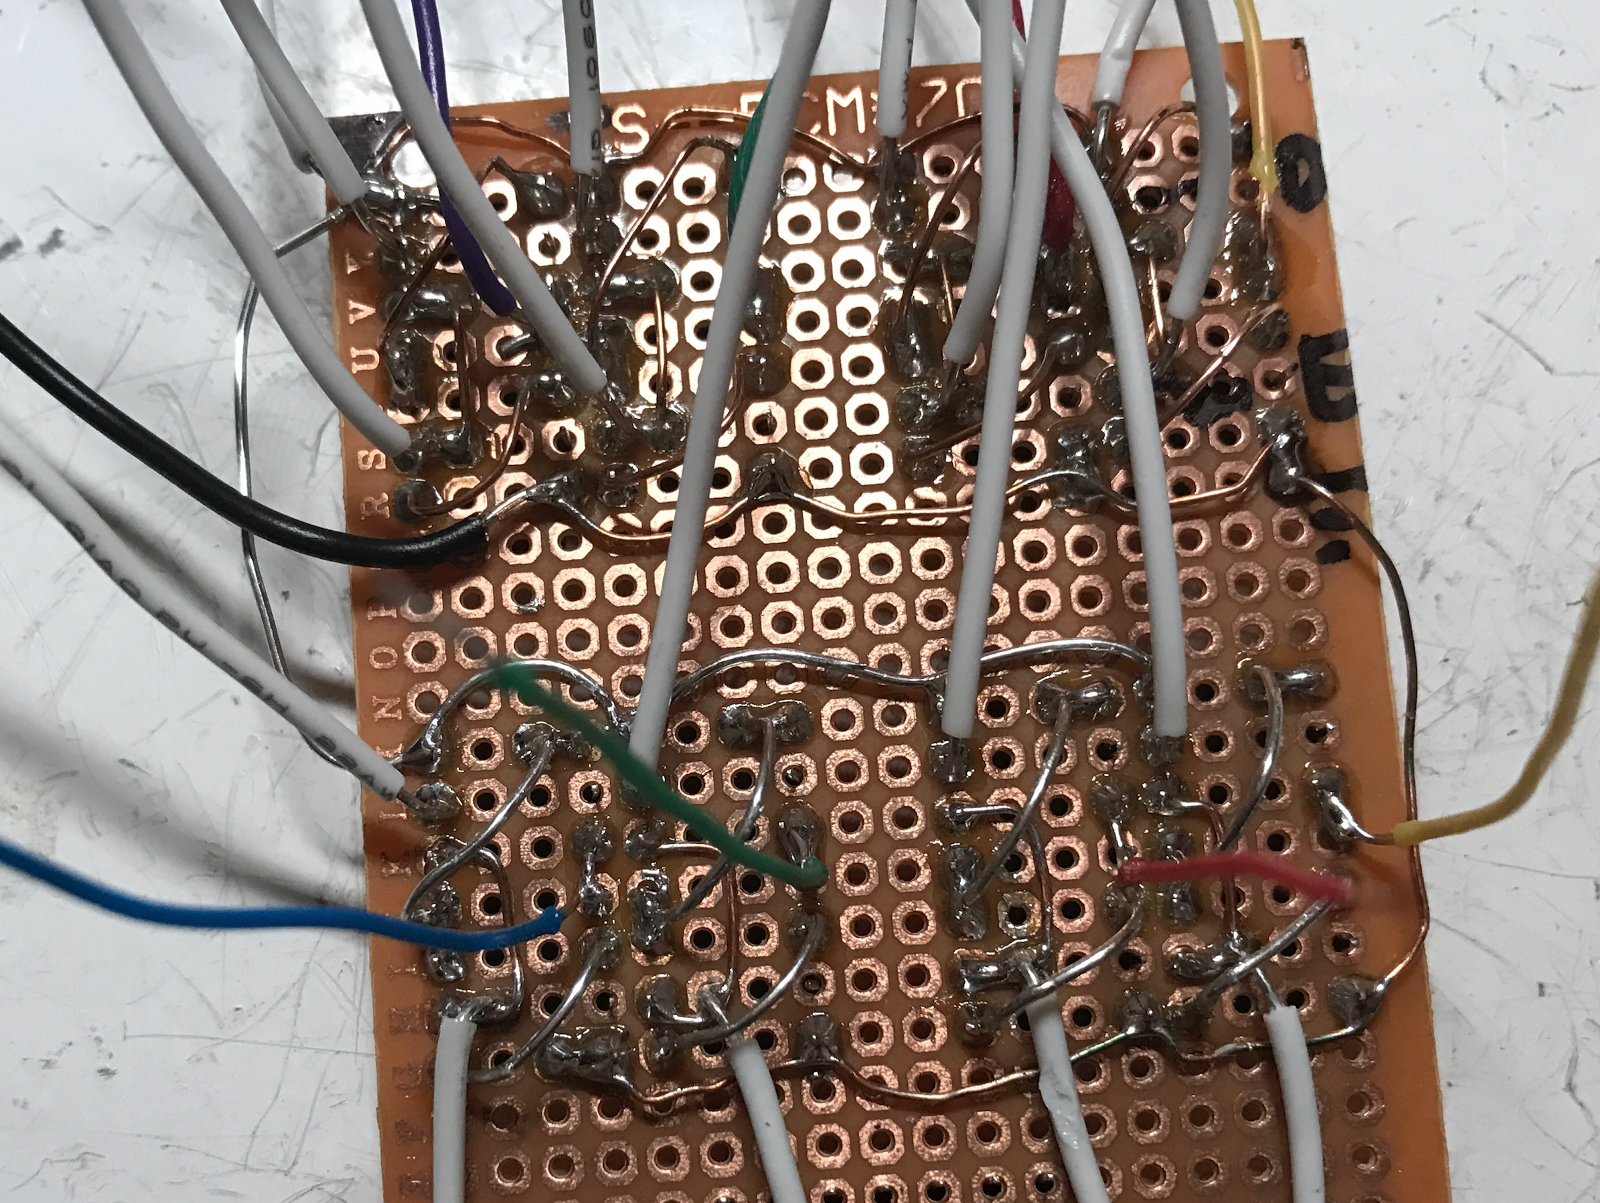 Building A 4 Bit Shift Register From 7400 Nand Gates For Gpio Output Alternate Flip Flop Circuits D Using Nor Latches This Is Good Start But By Themselves Are Insufficient To Build Clocking Needed